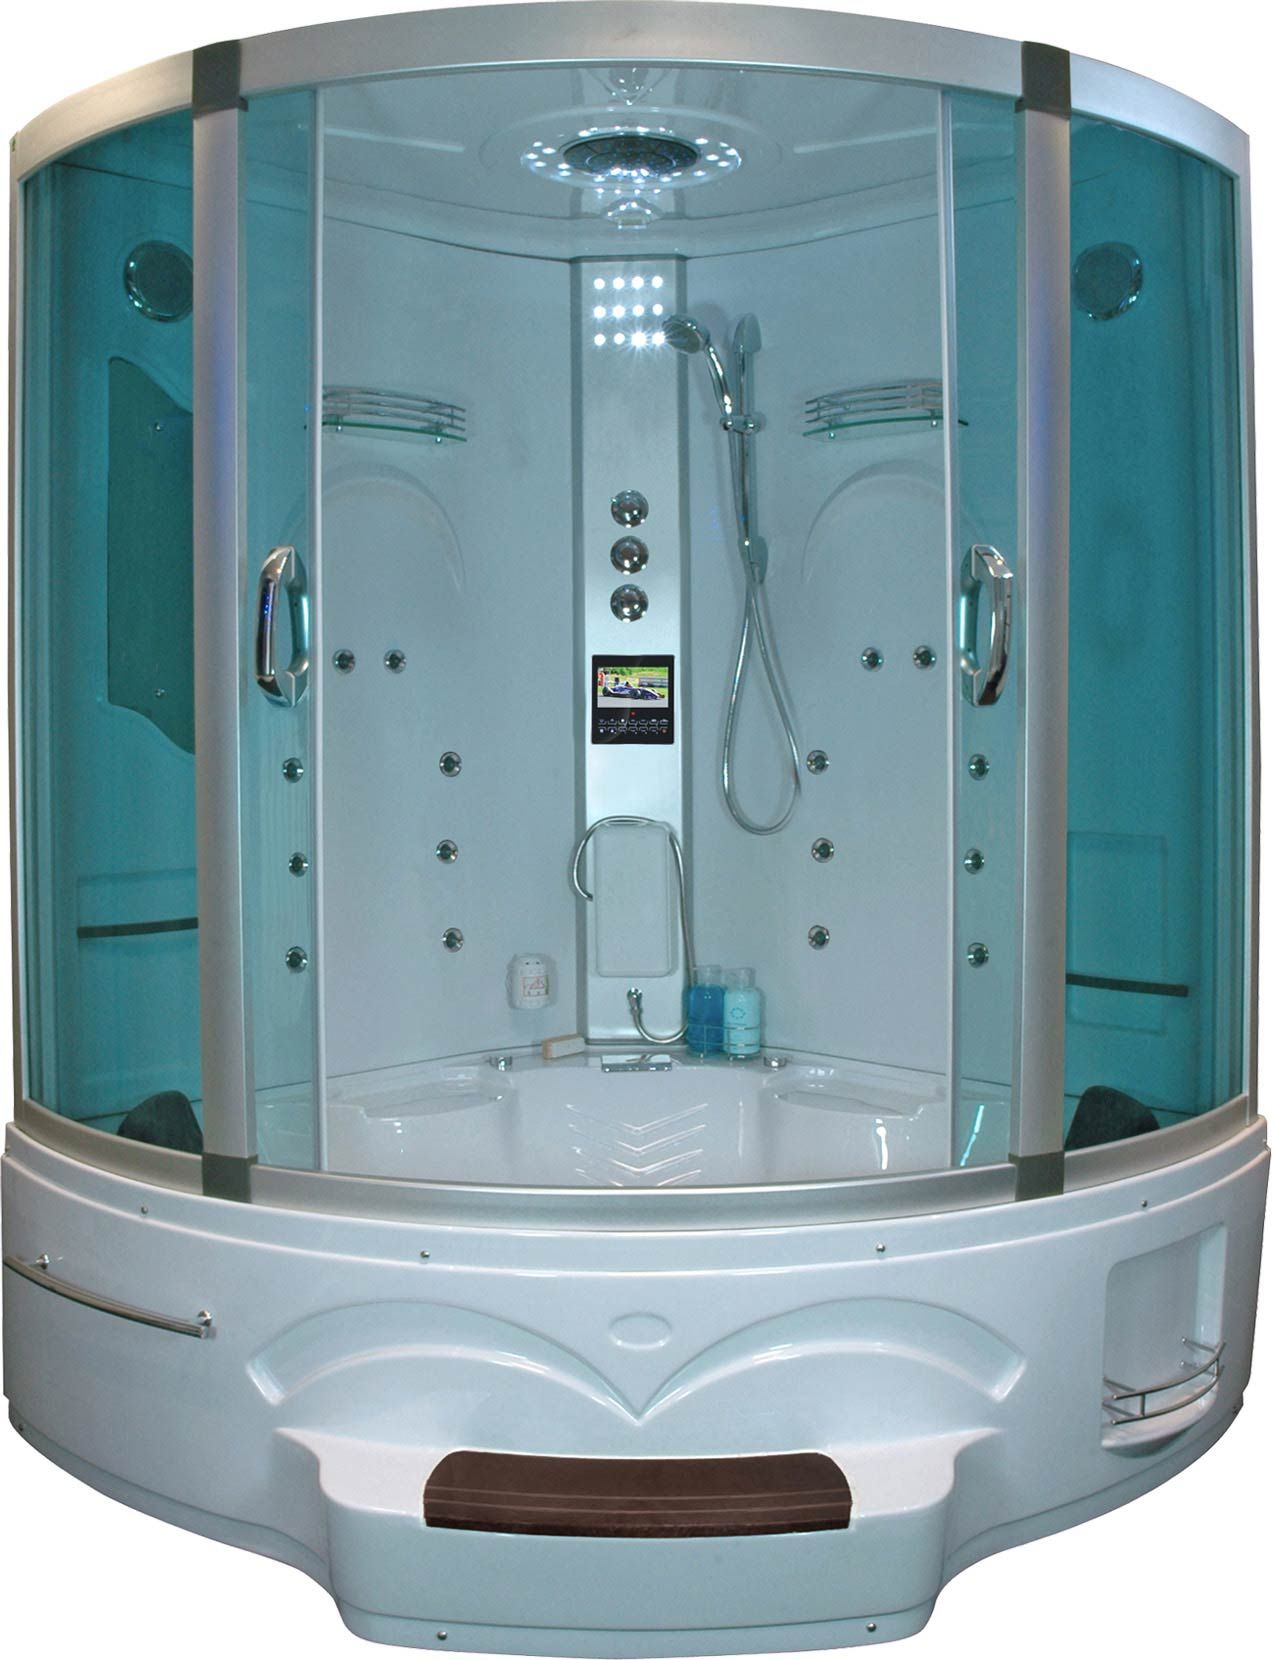 2 Person Steam Shower Room With Jacuzzi Whirlpool And Tv